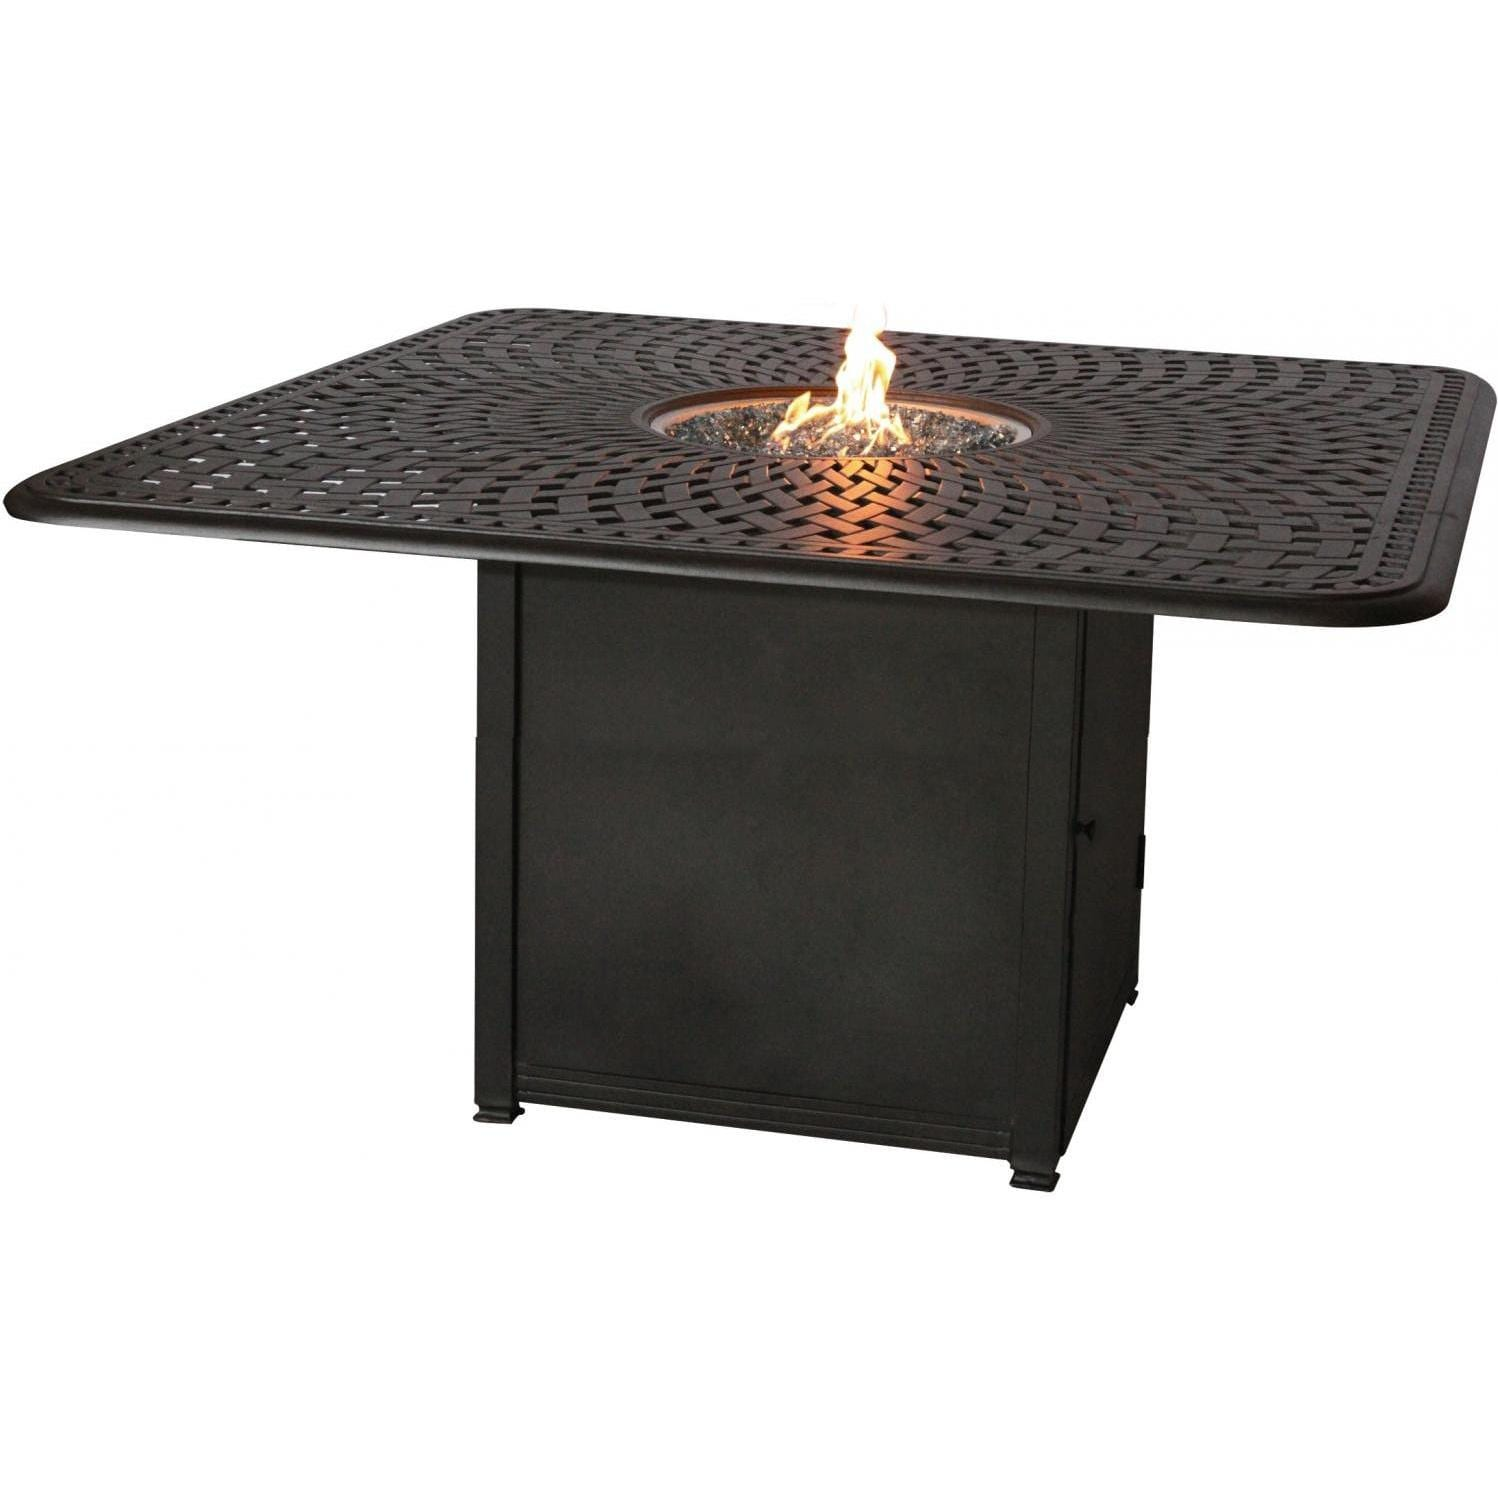 Signature 64 Inch Counter Height Propane Fire Pit Dining Table